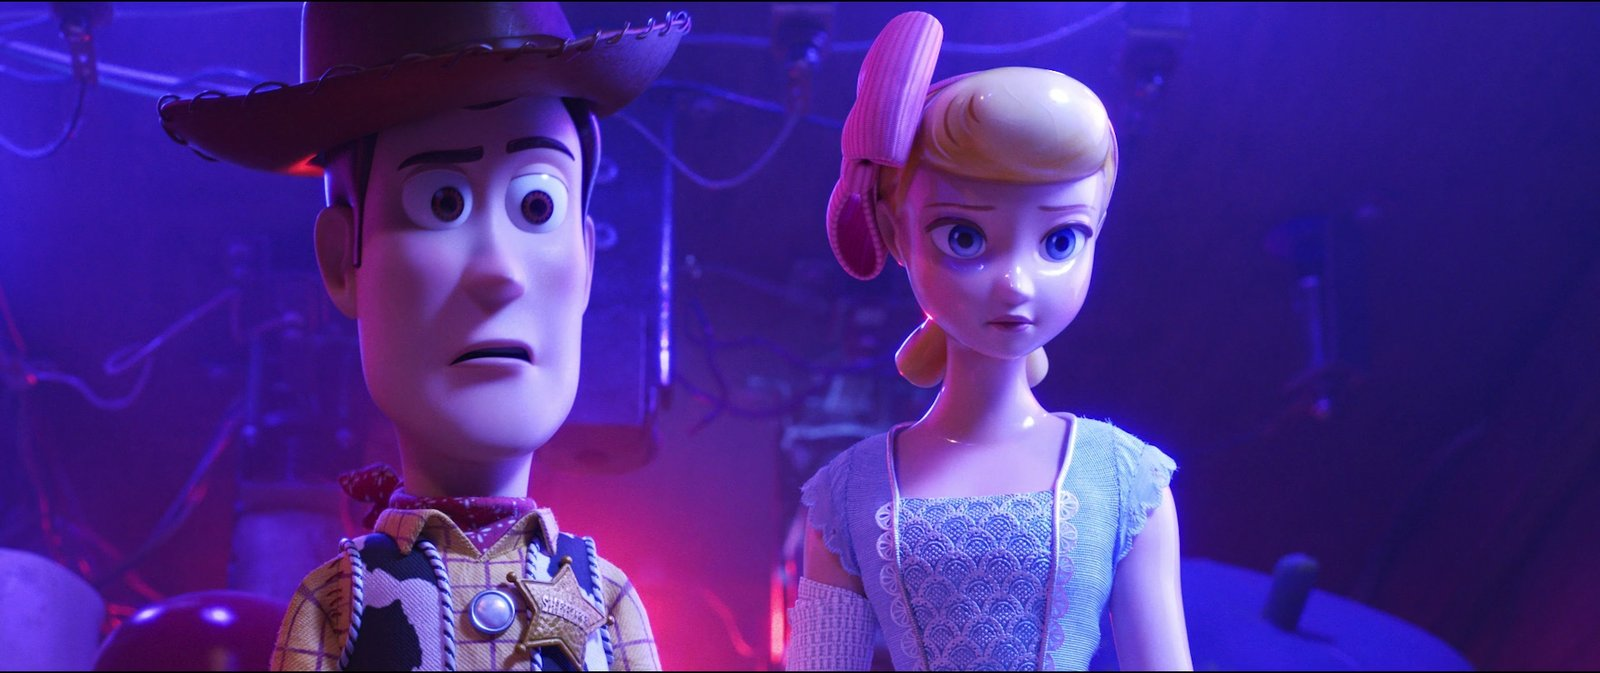 Toy Story 4 (2019) image